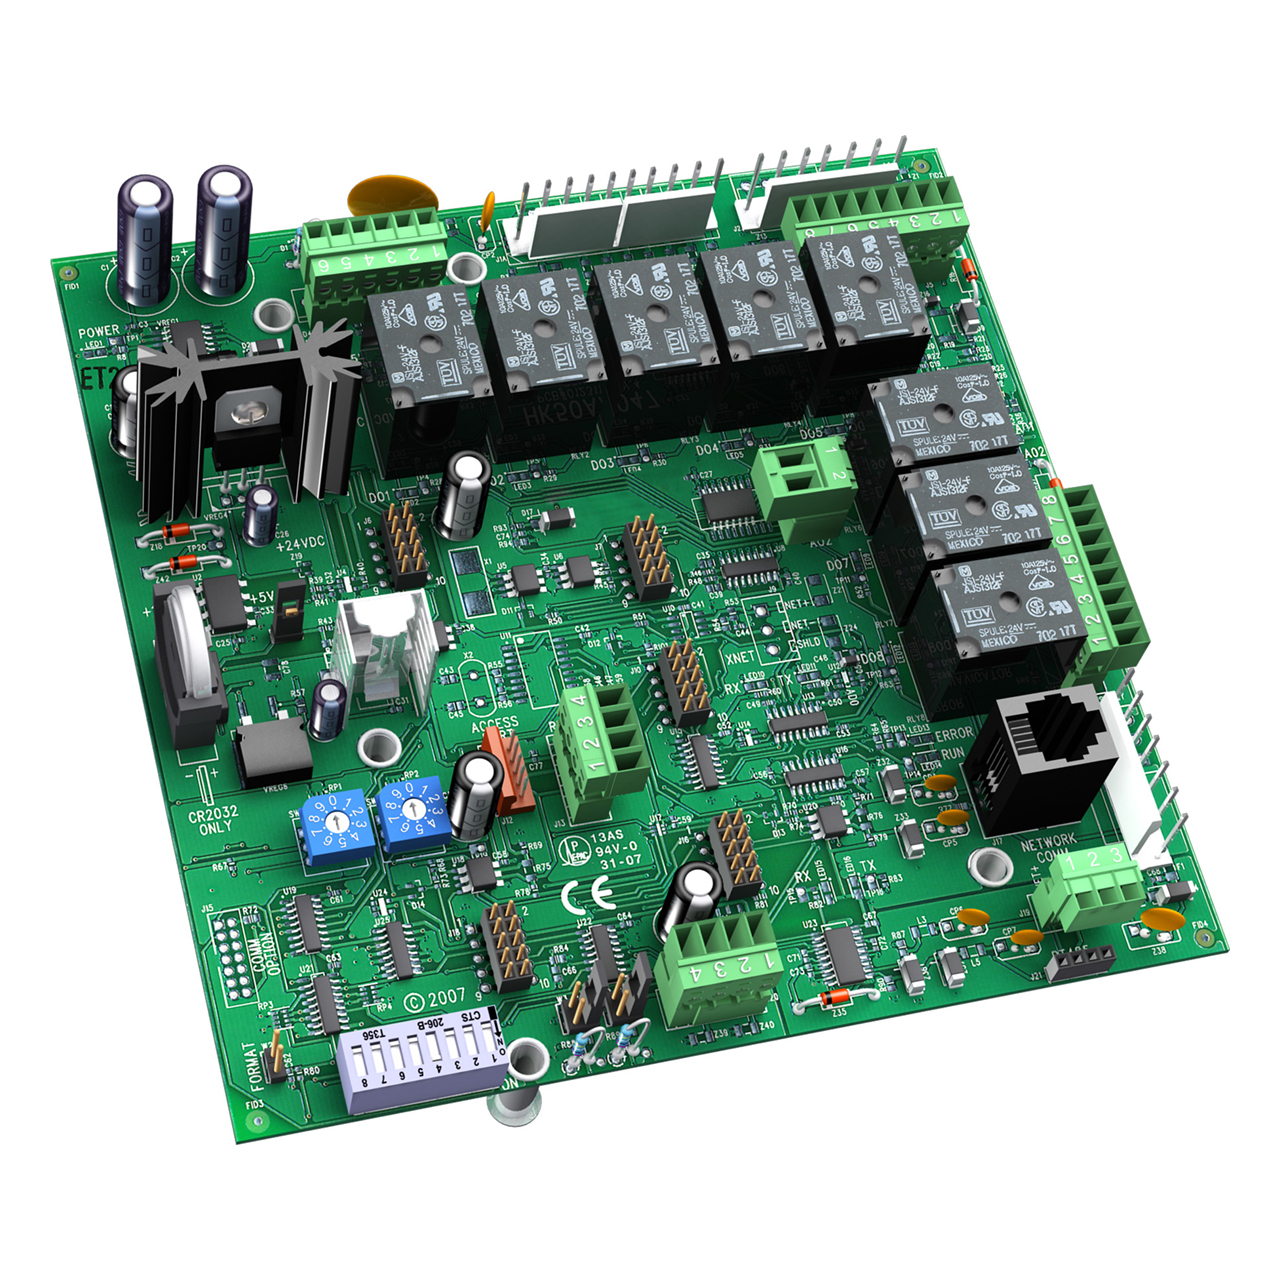 carrier-OPN-RTUM2-rtu-open-product-integrated-controller